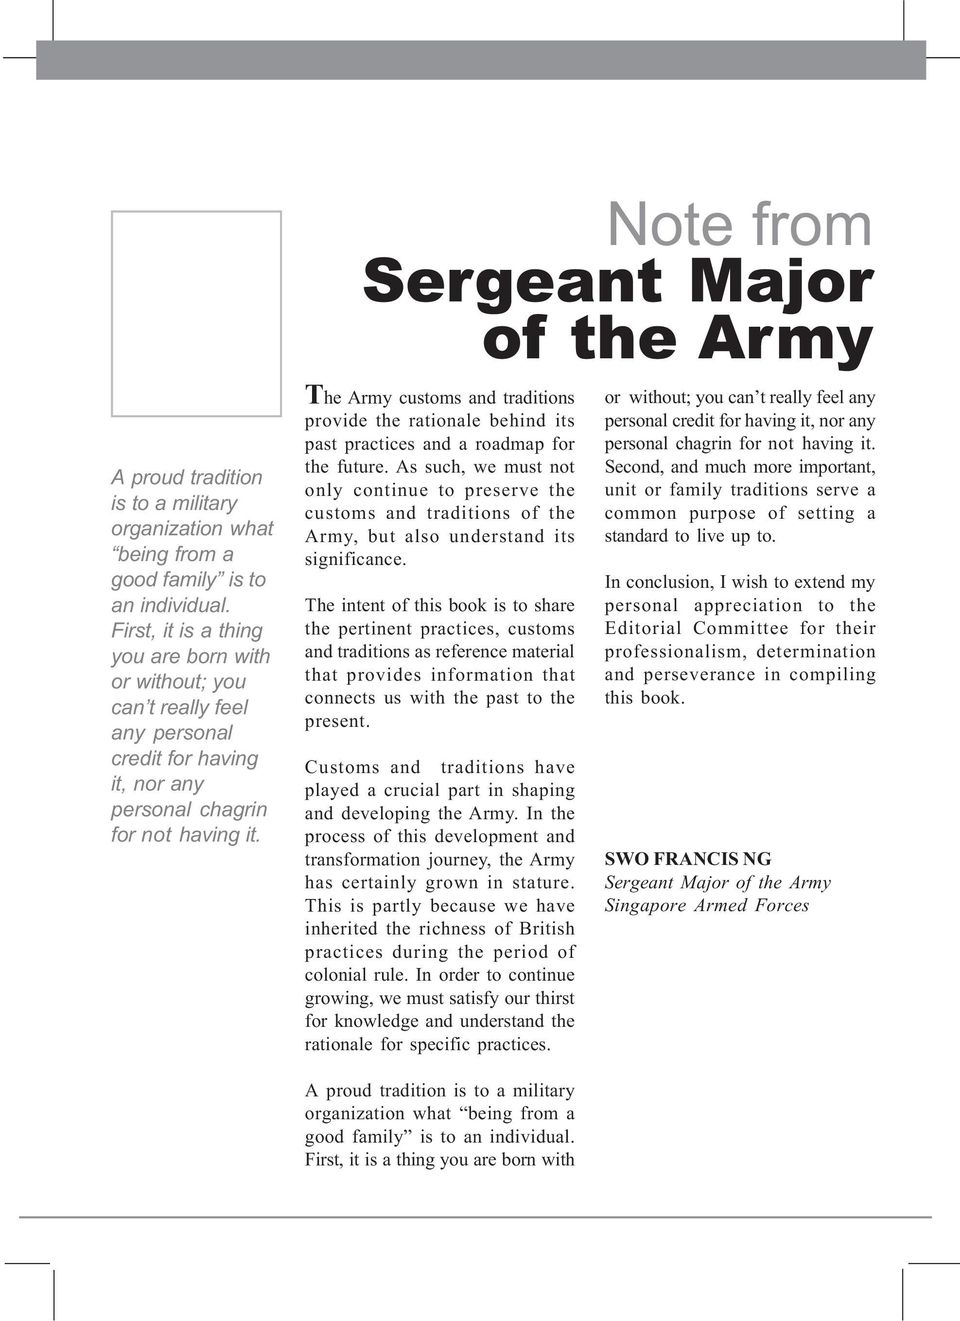 Note from Sergeant Major of the Army The Army customs and traditions provide the rationale behind its past practices and a roadmap for the future.